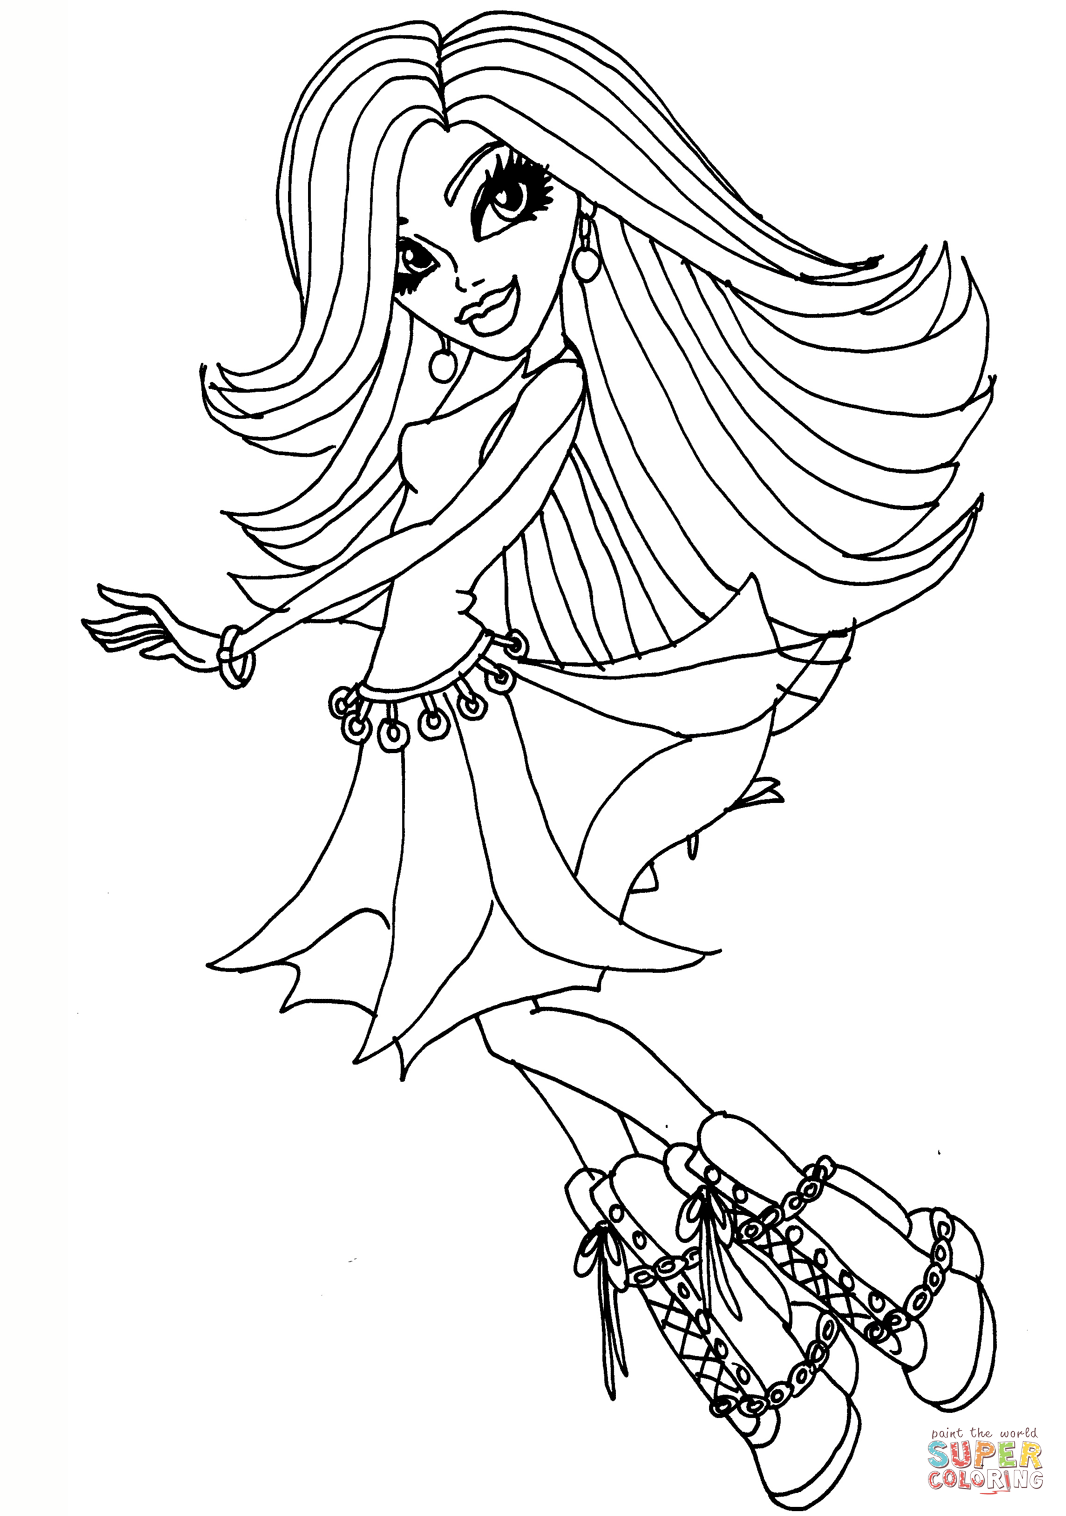 coloring pages monster high värityskuva monster high coloring pages getcoloringpagescom pages coloring high värityskuva monster